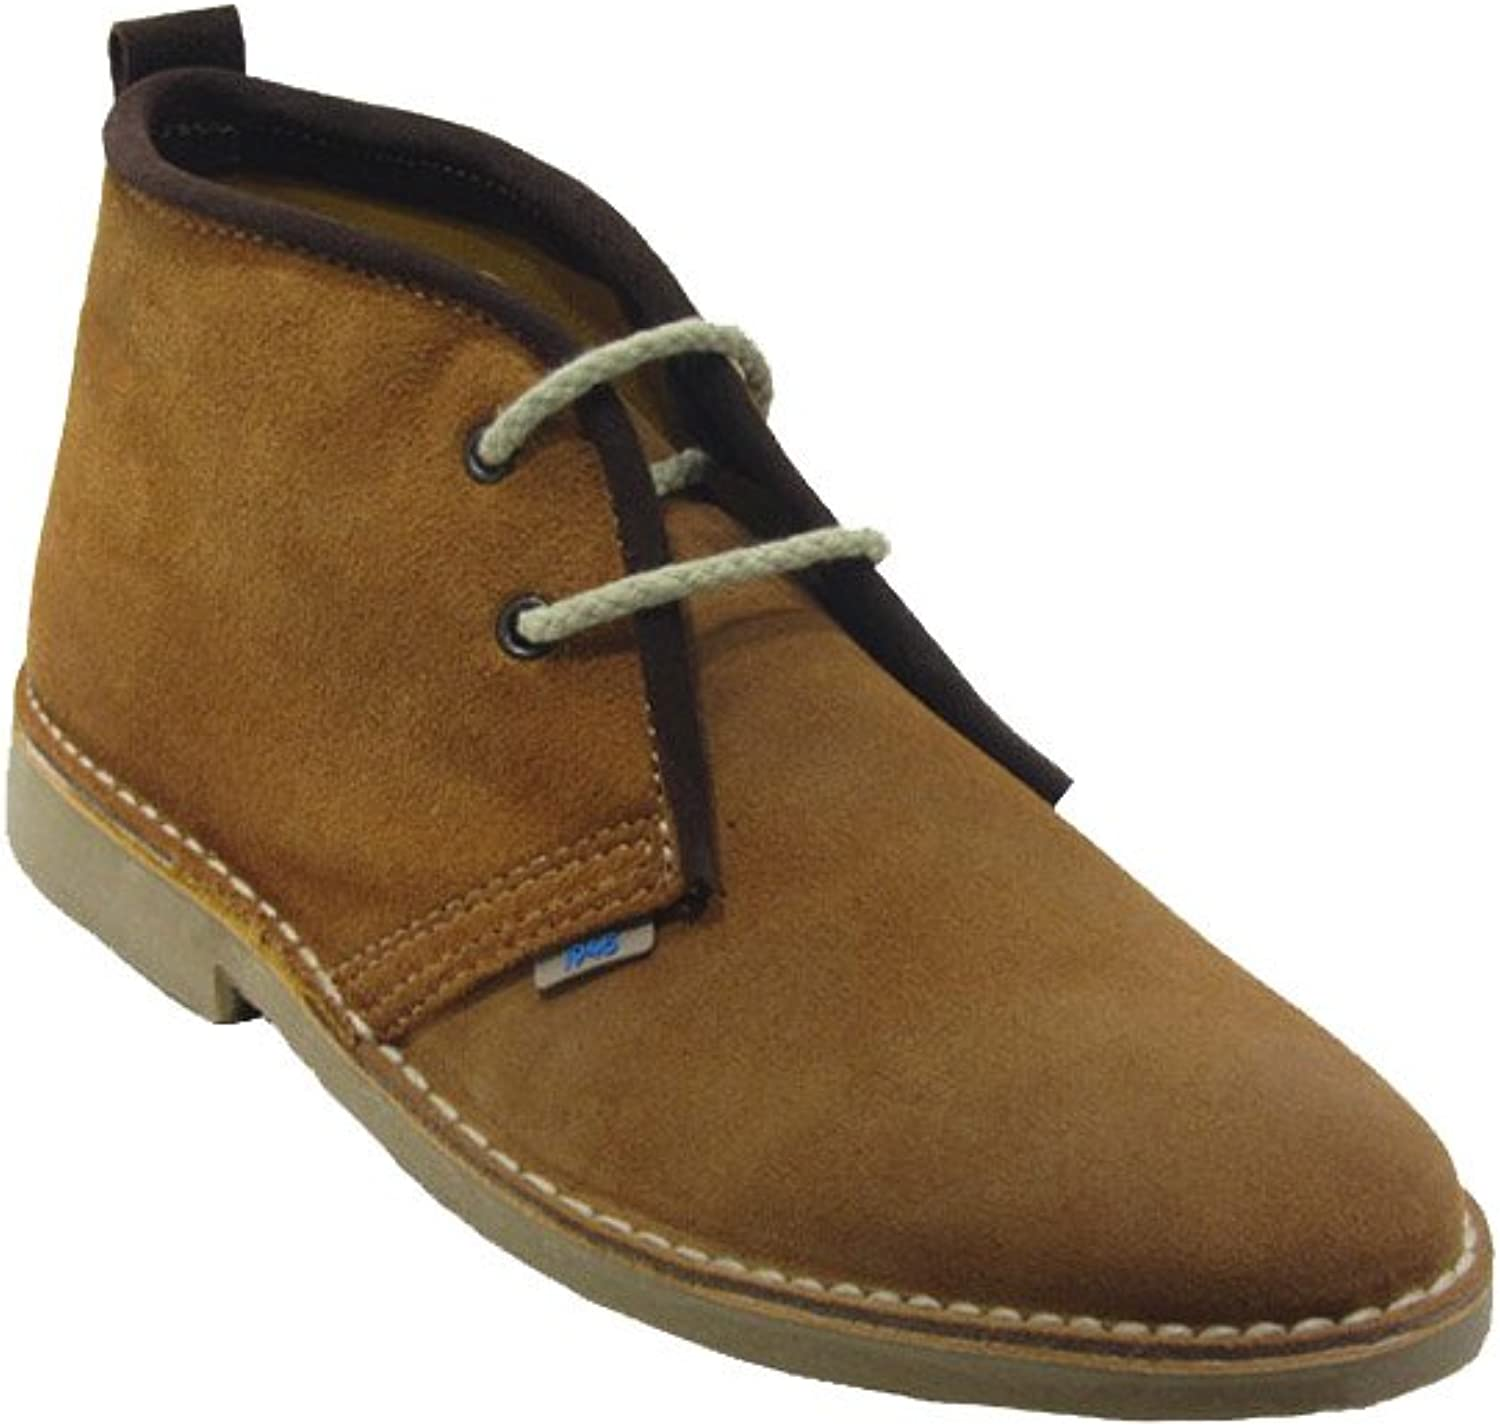 La Auténtica K100R - Desert Boot Italian tip Coloured Ribbon, Unisex Adult, Brown Firewood - Chocolate Brown